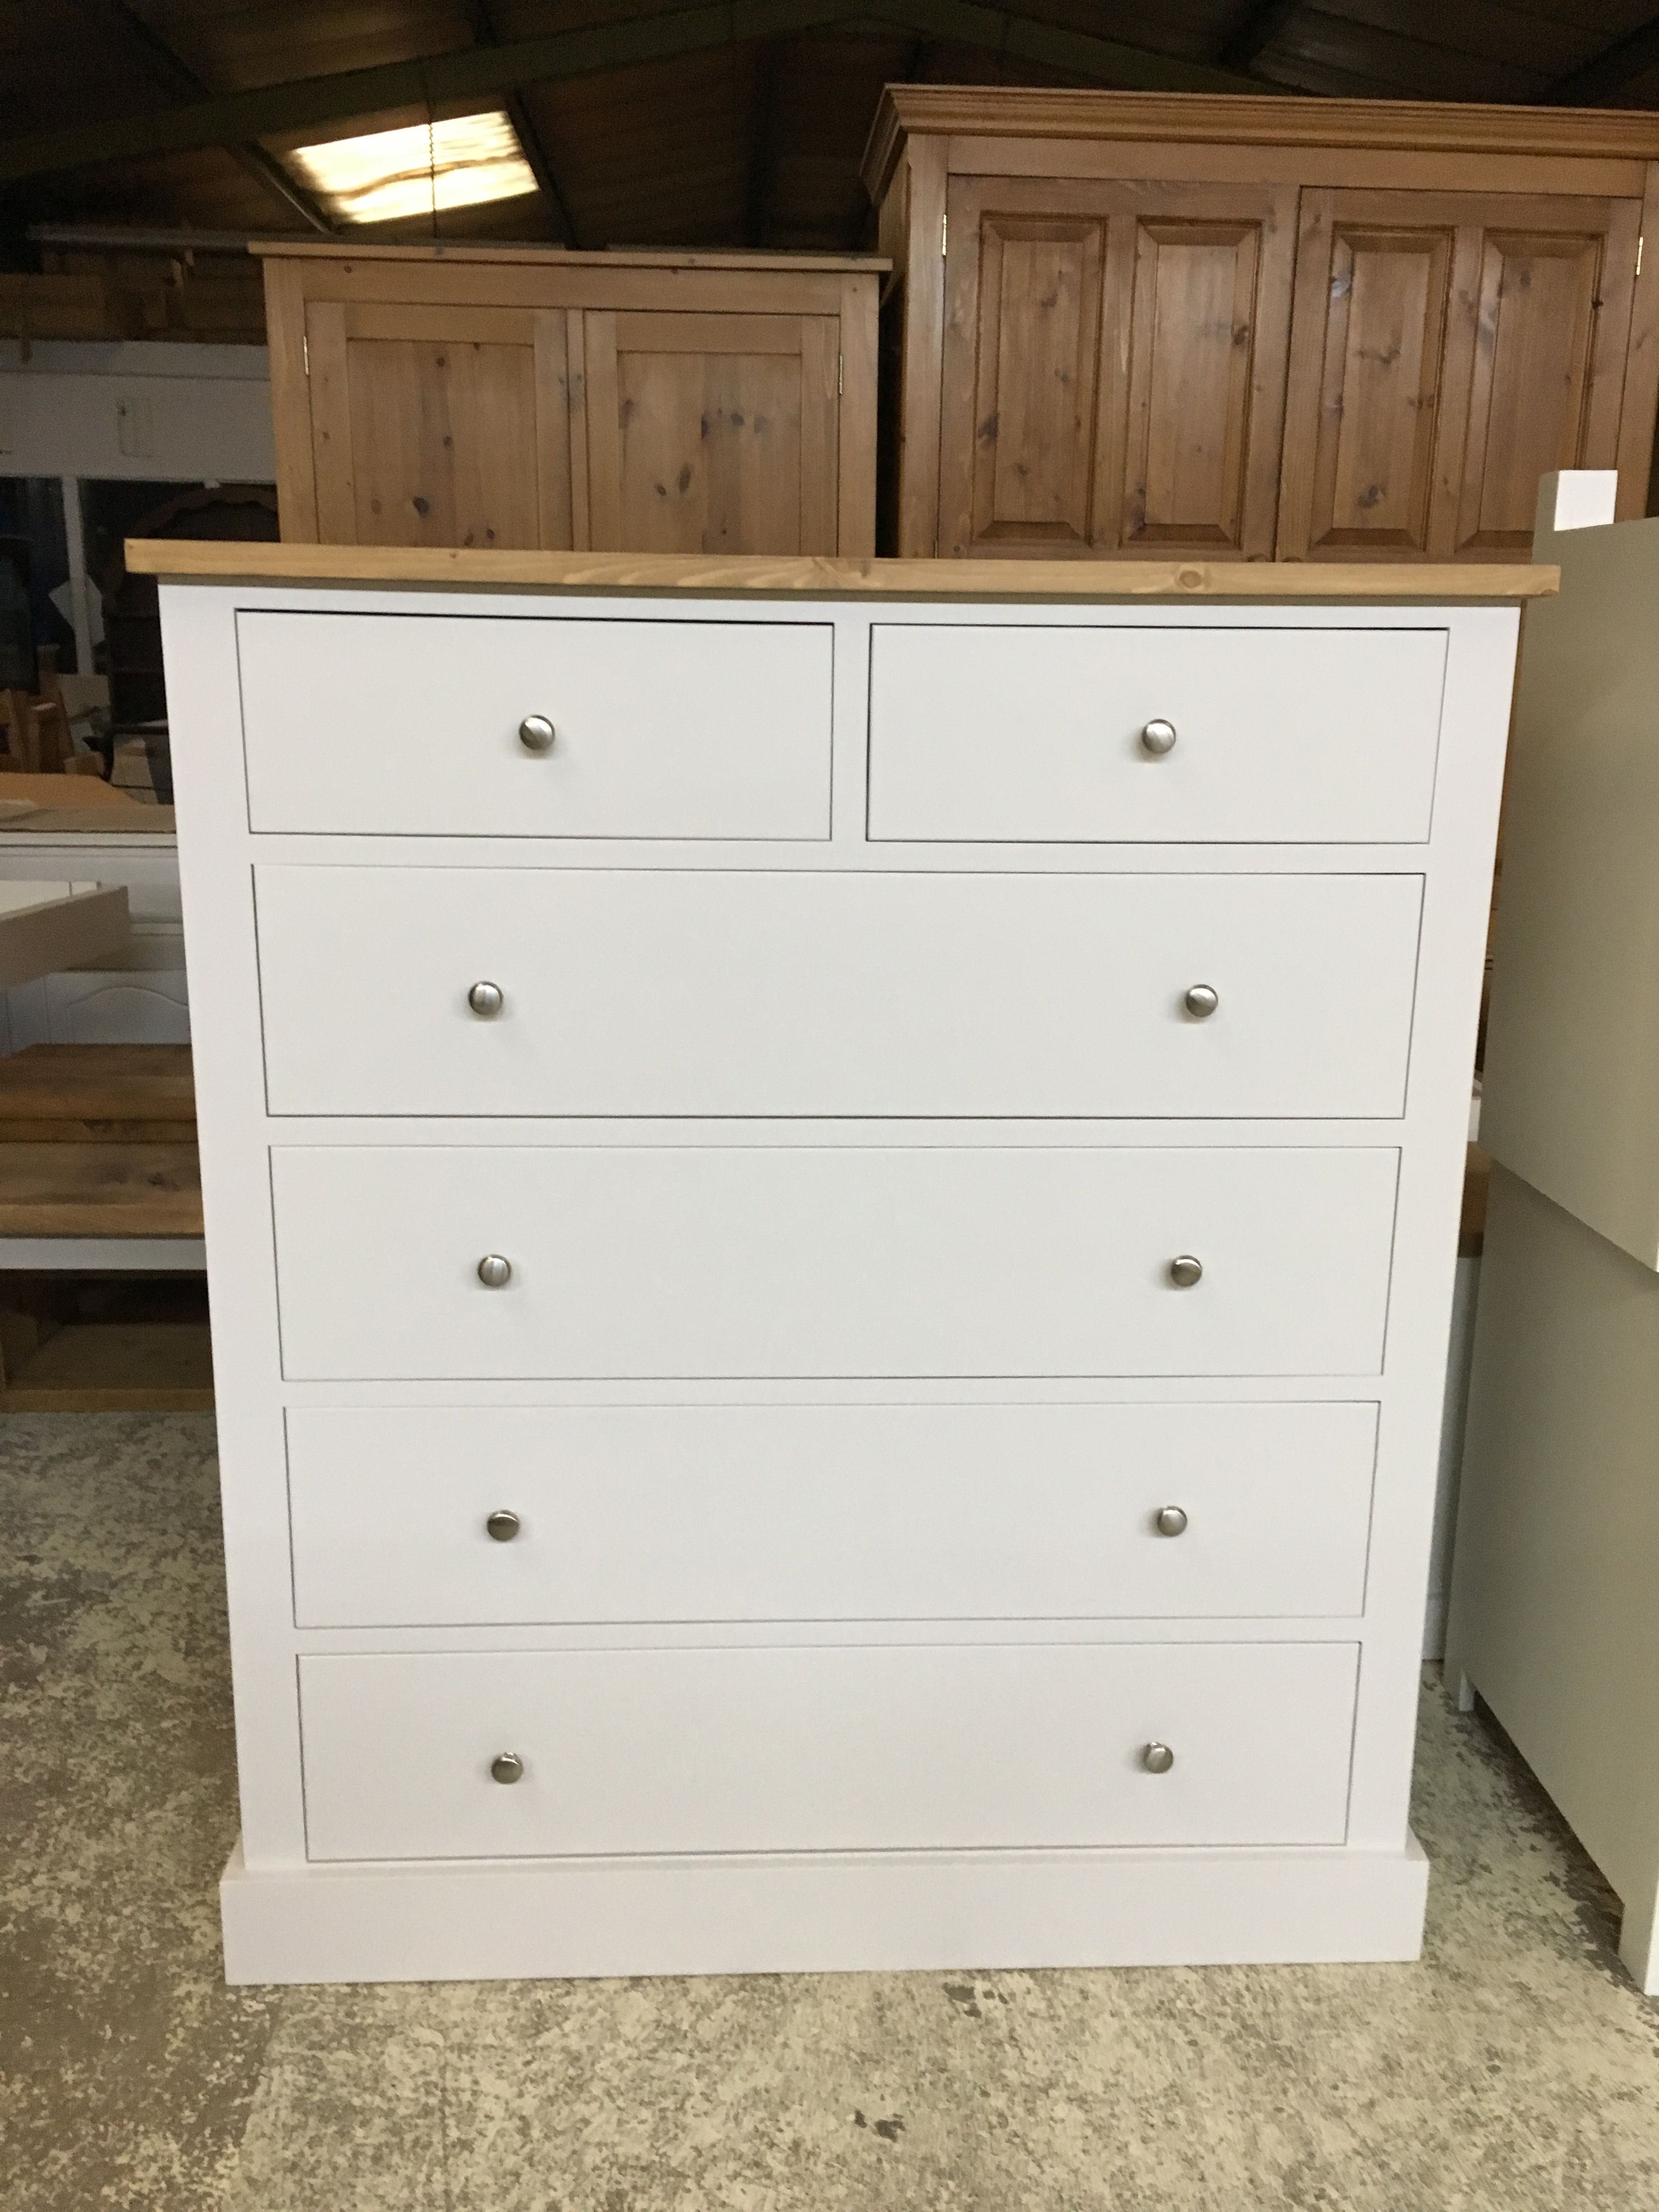 Large 2 Over 4 Chest Of Drawers Bespoke Furniture At Affordable Prices Cobwebs Furniture Company Pine Furniture Furniture Solid Wood Furniture